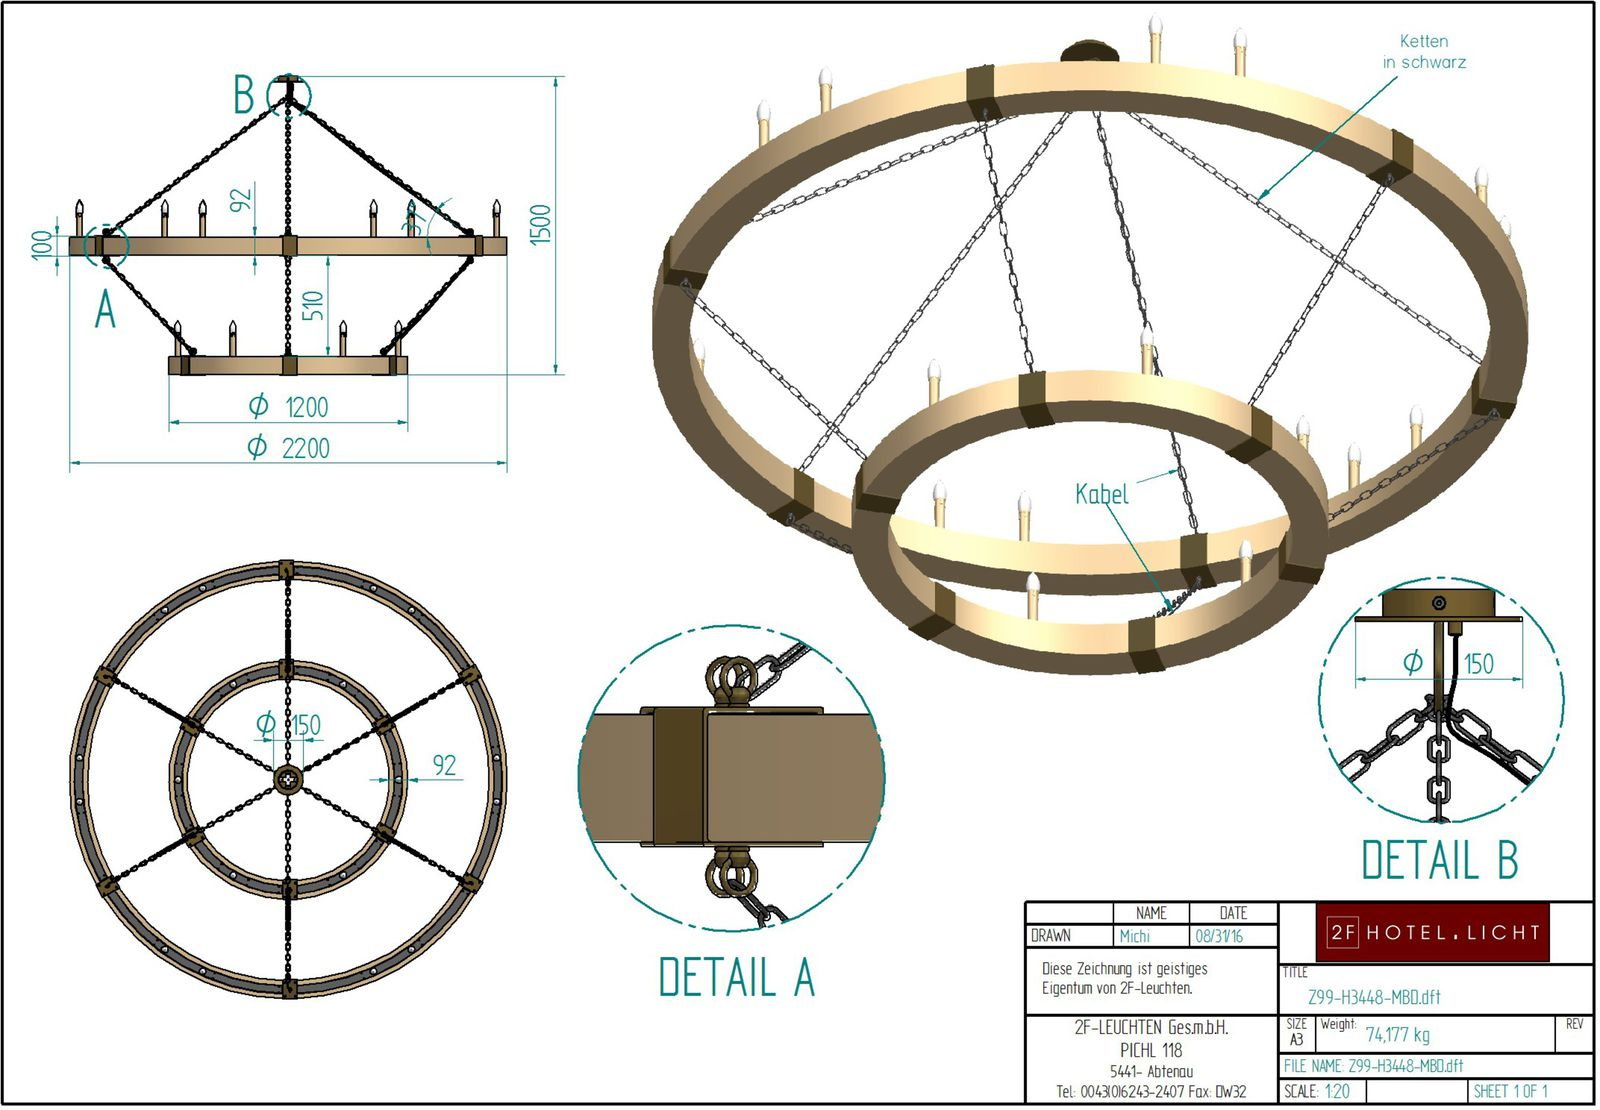 Pendant lamp, height=1500mm, wide=2200mm, surface: brushed oak, rust, black cable, weight=65kg, techn. details: 18xE14